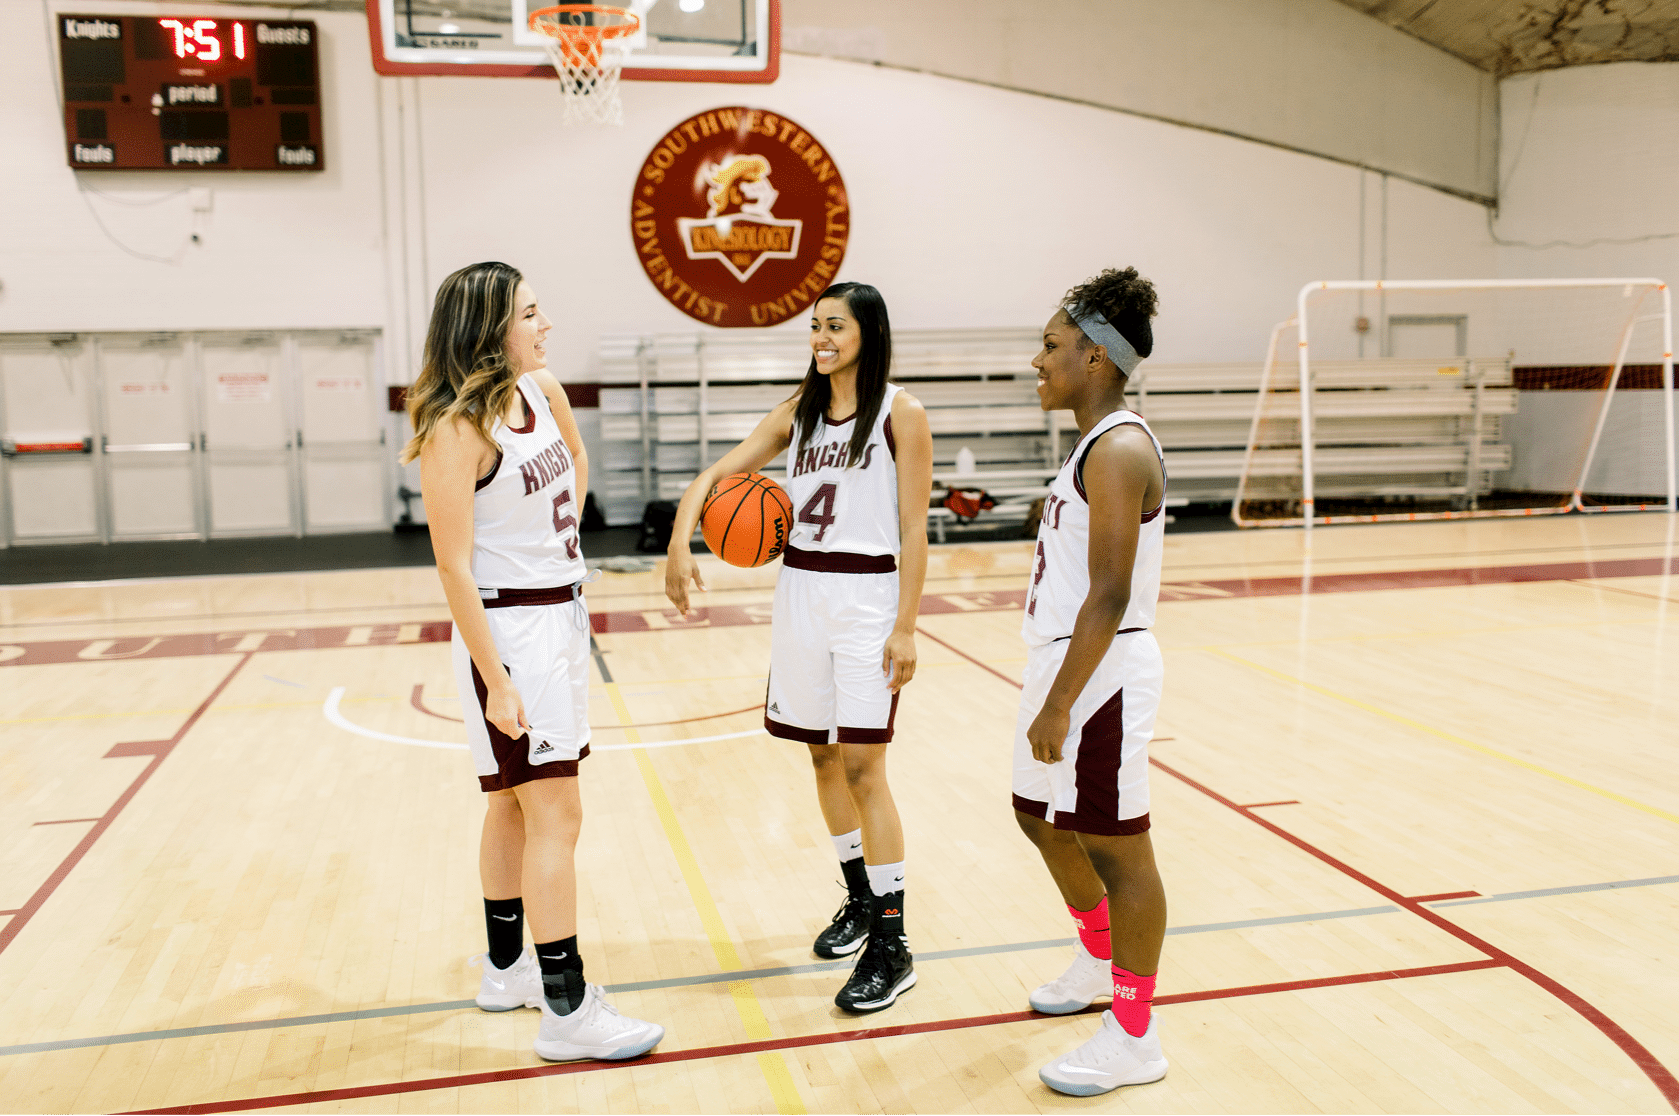 Three female basketball players in uniform stand talking together at the gymnasium, one holds a basketball